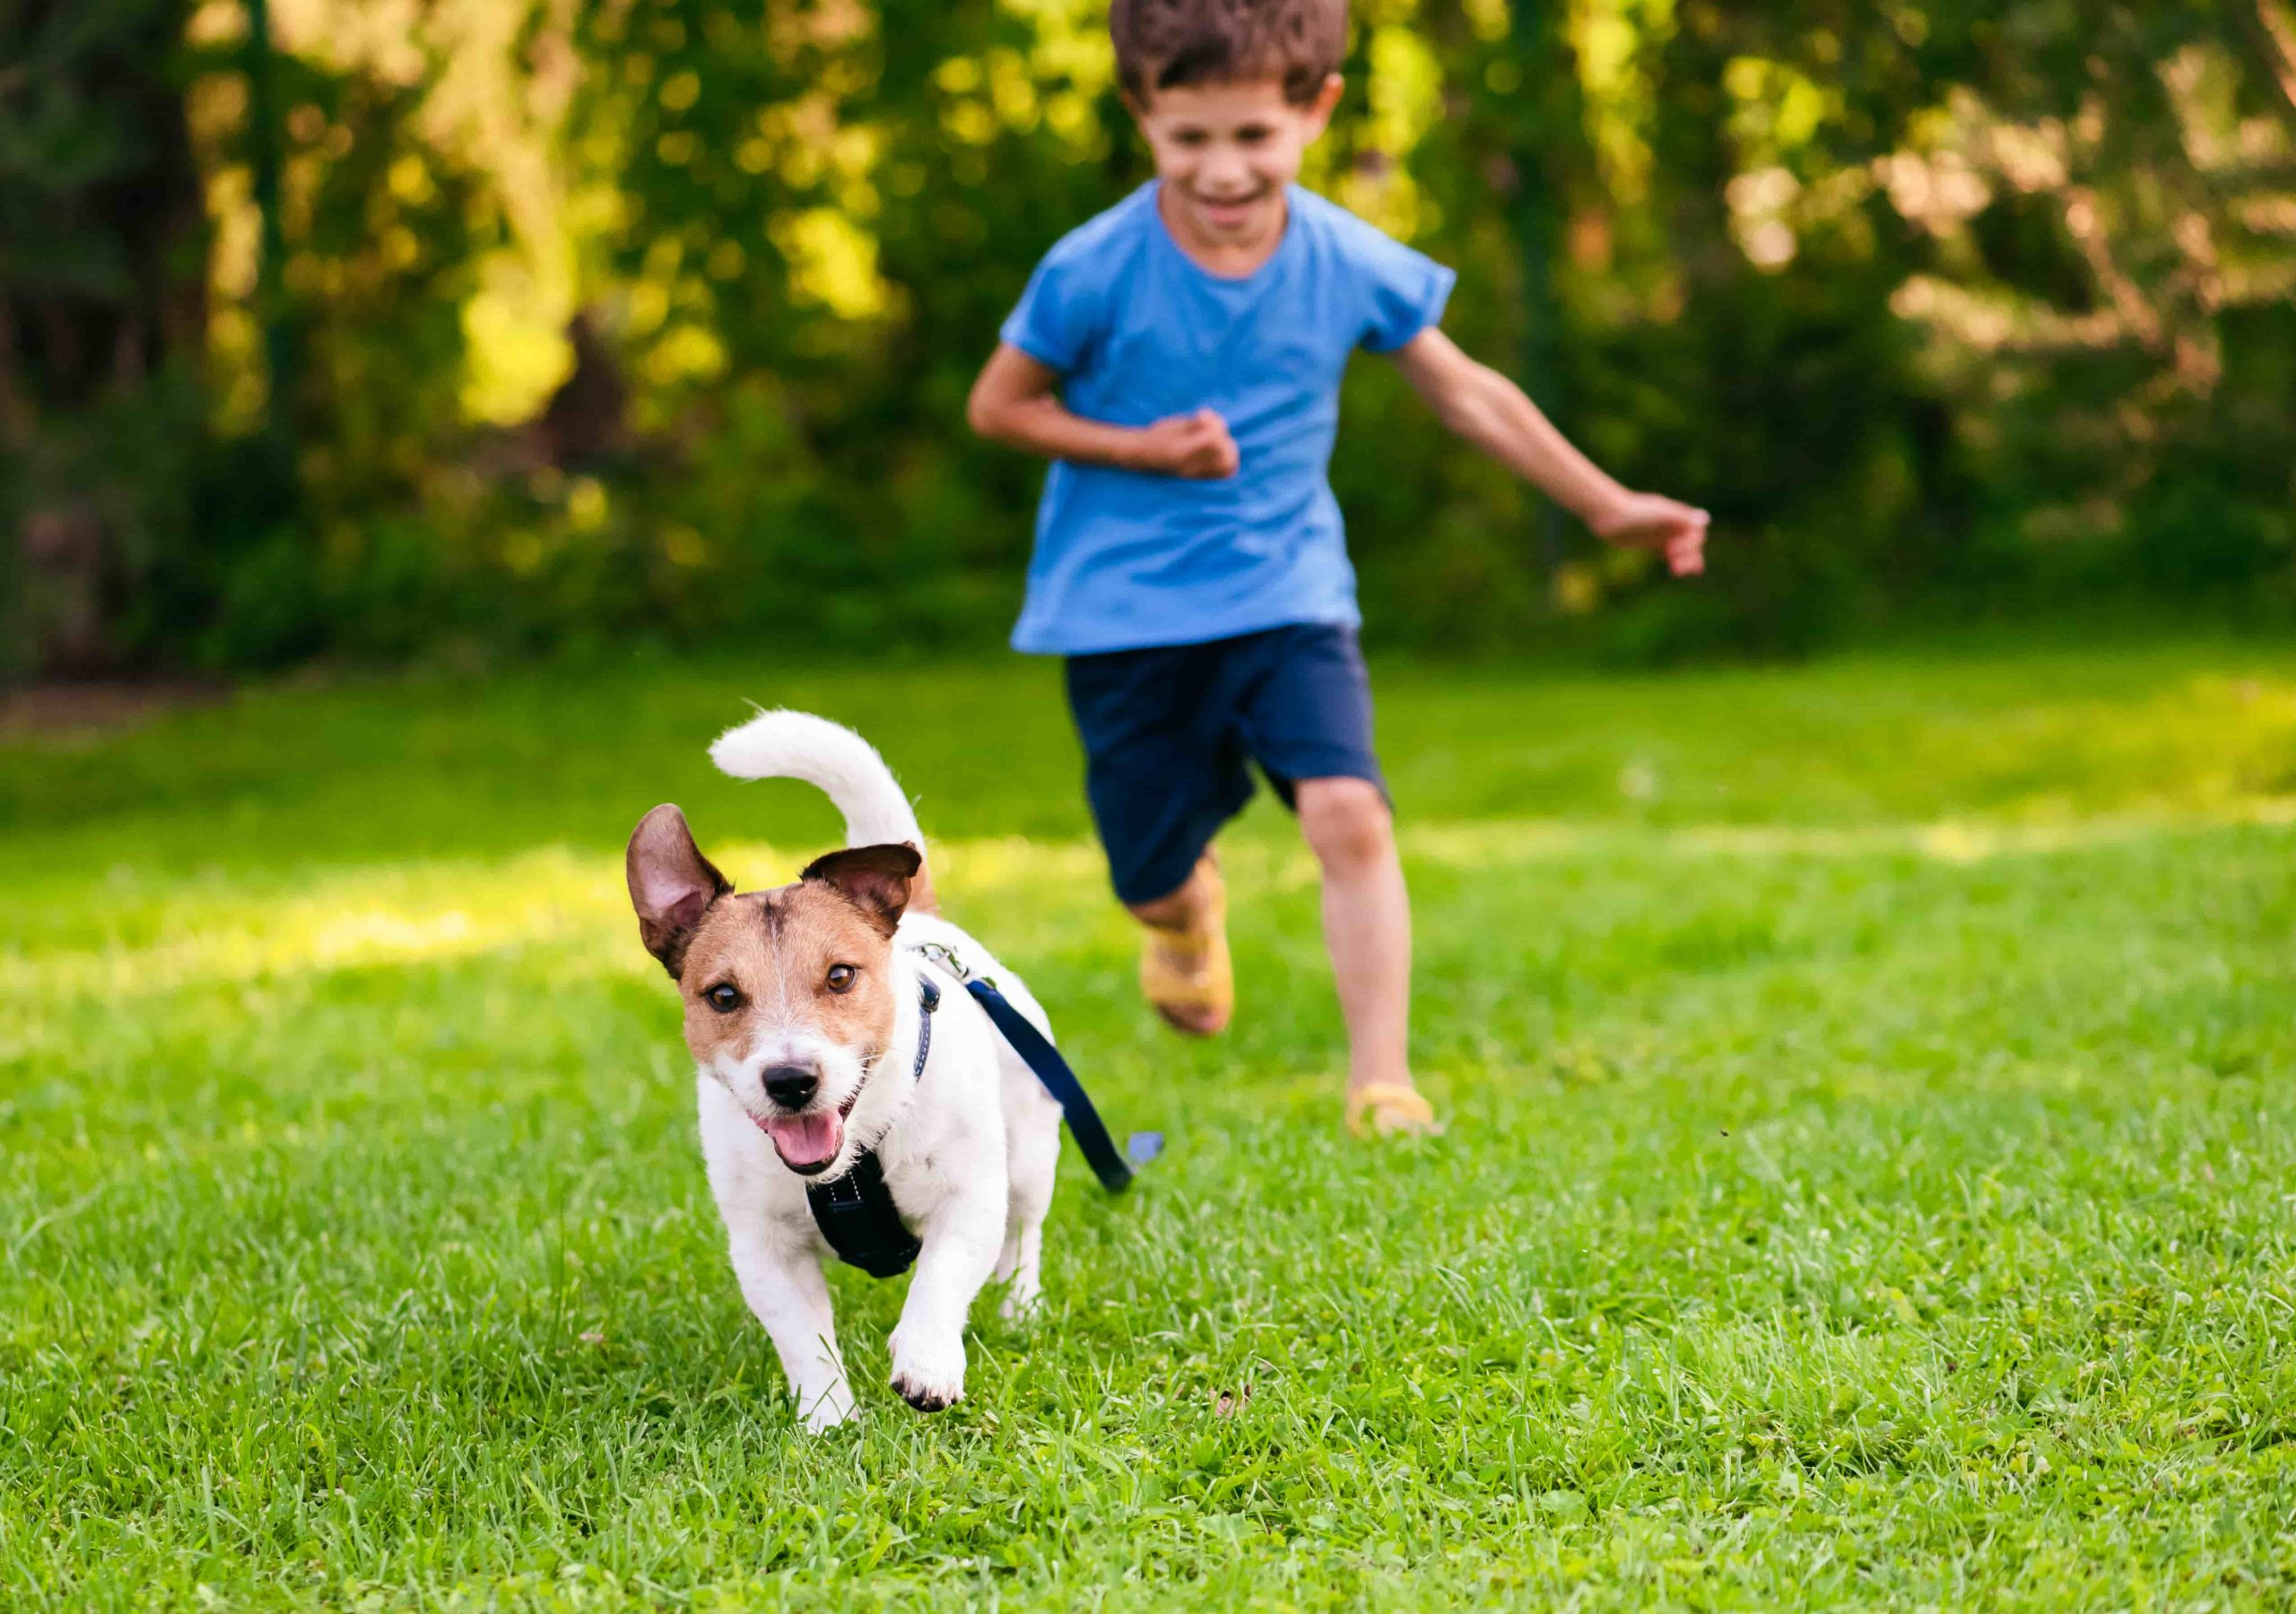 Boy running after his dog